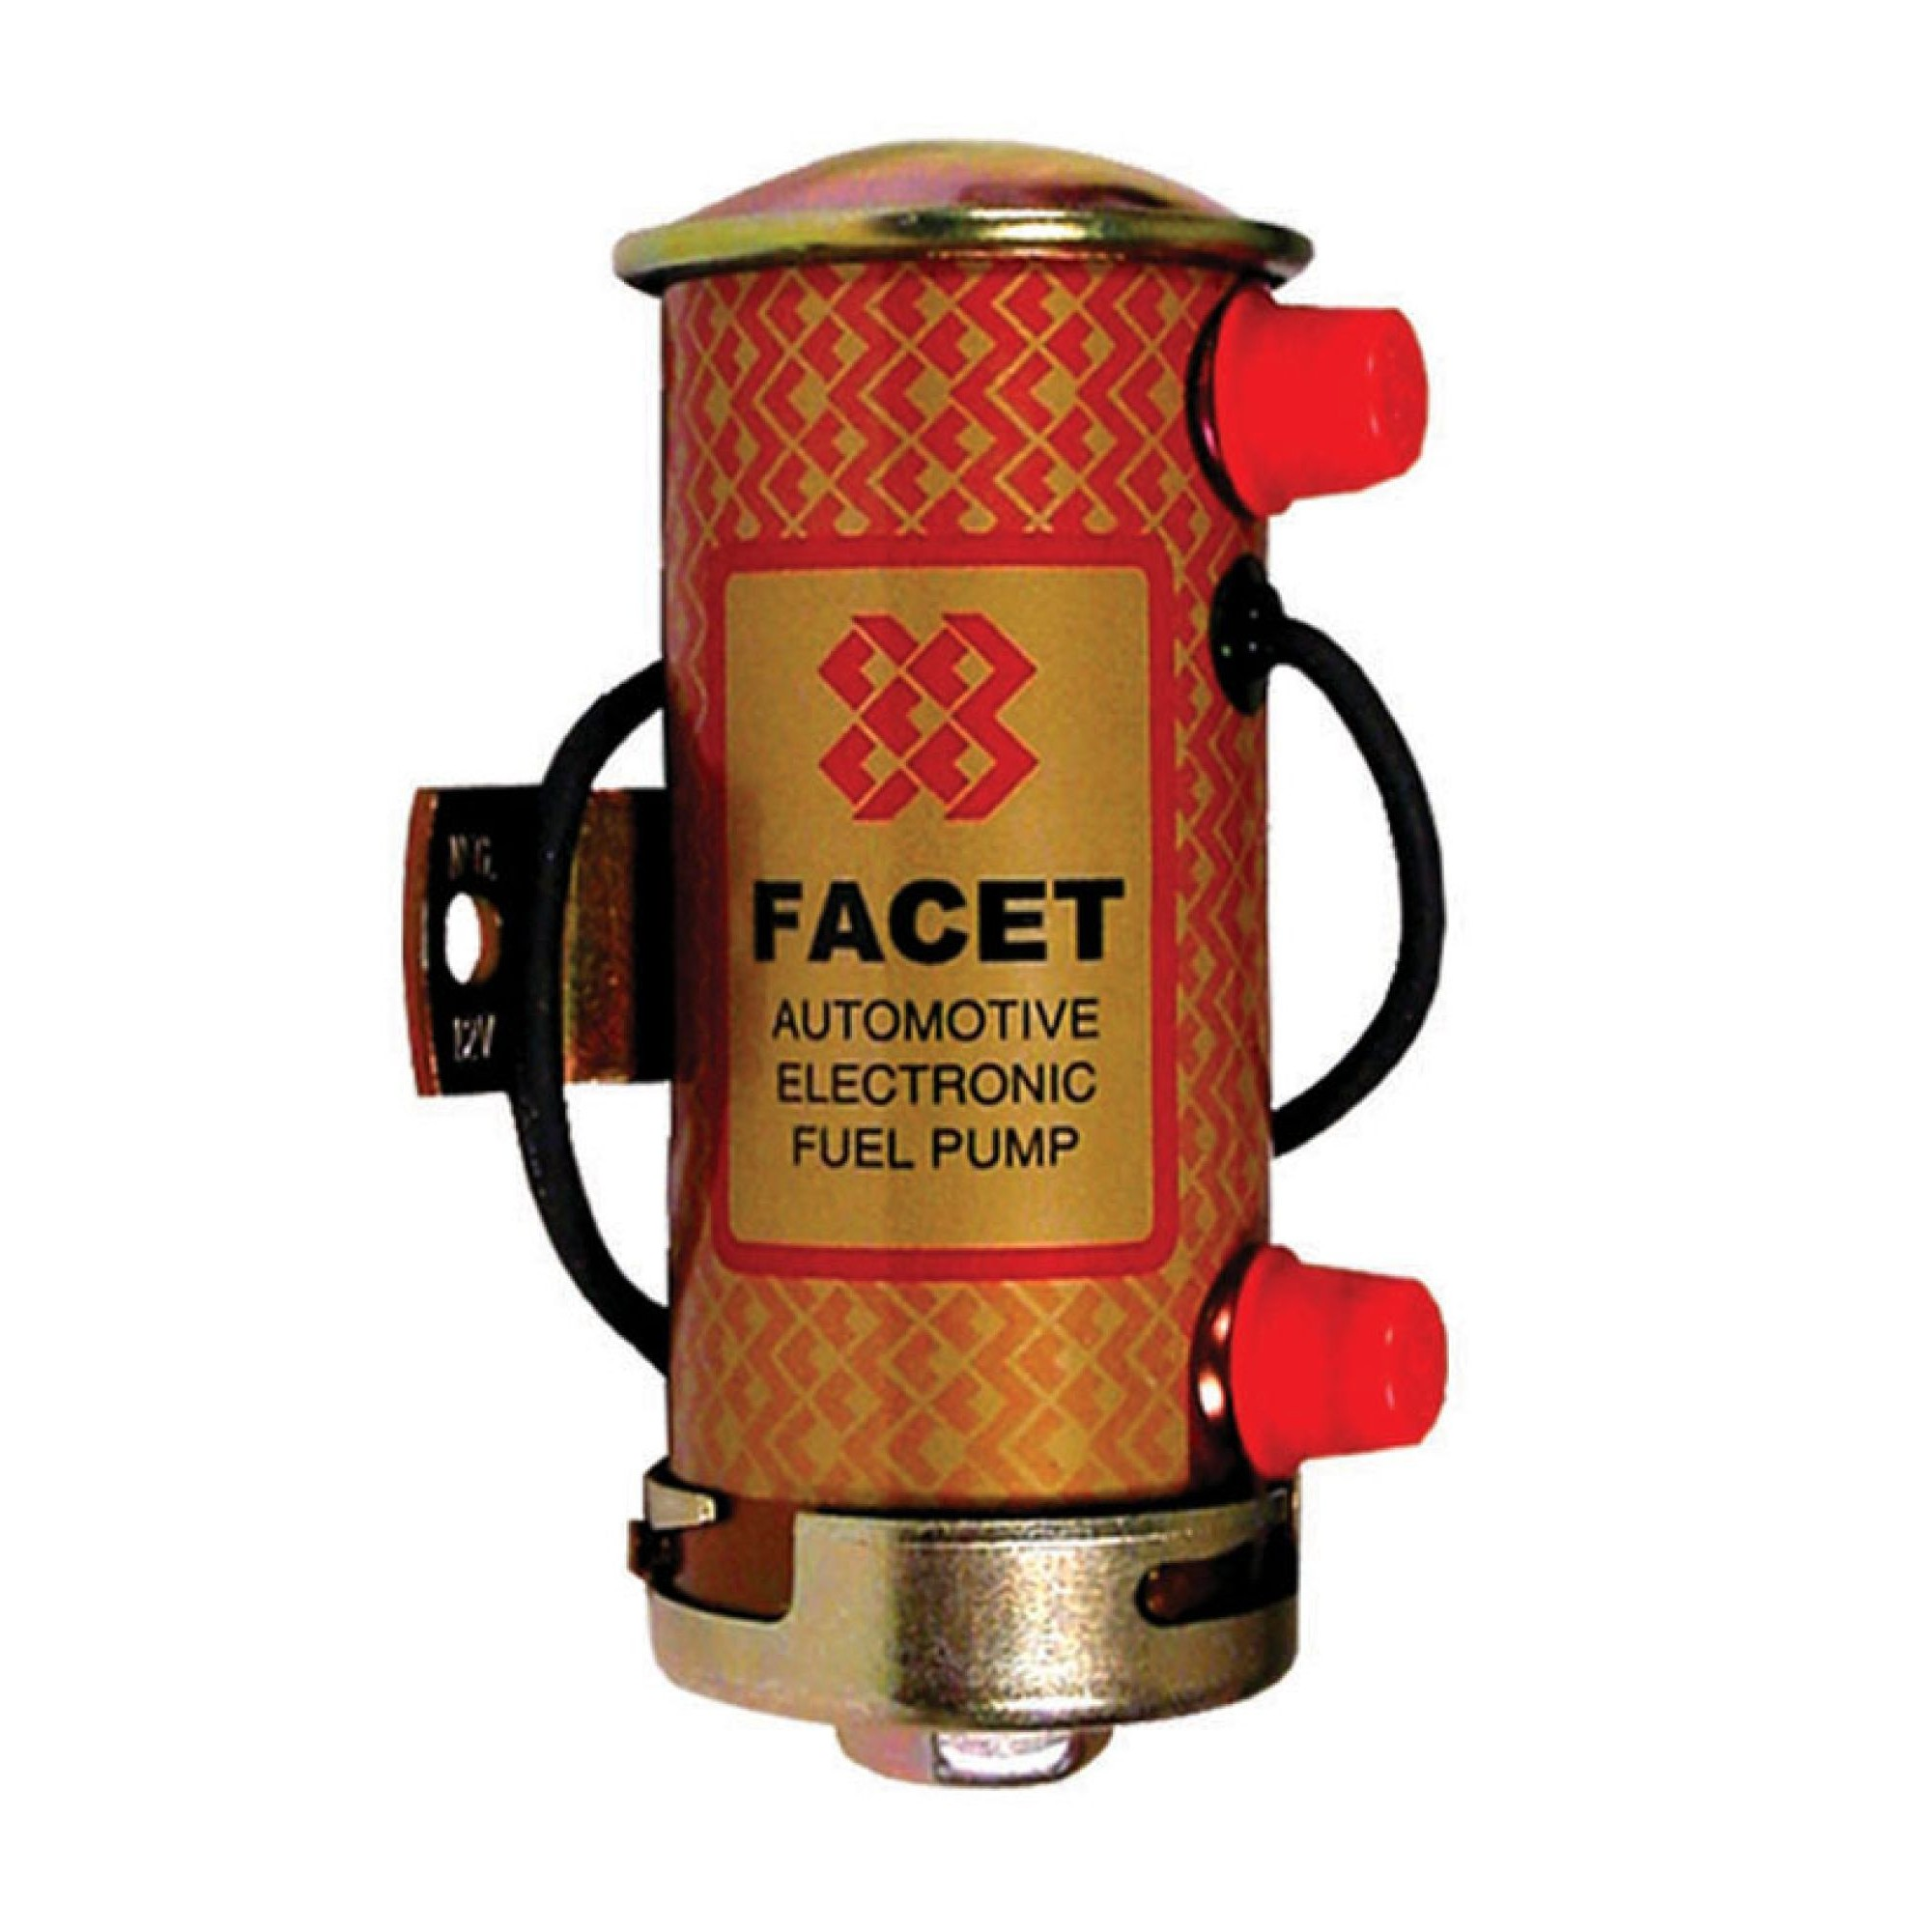 Facet Red Top Competition Fuel Pump Low Pressure Pumps Filters Regulators And More At Supplies